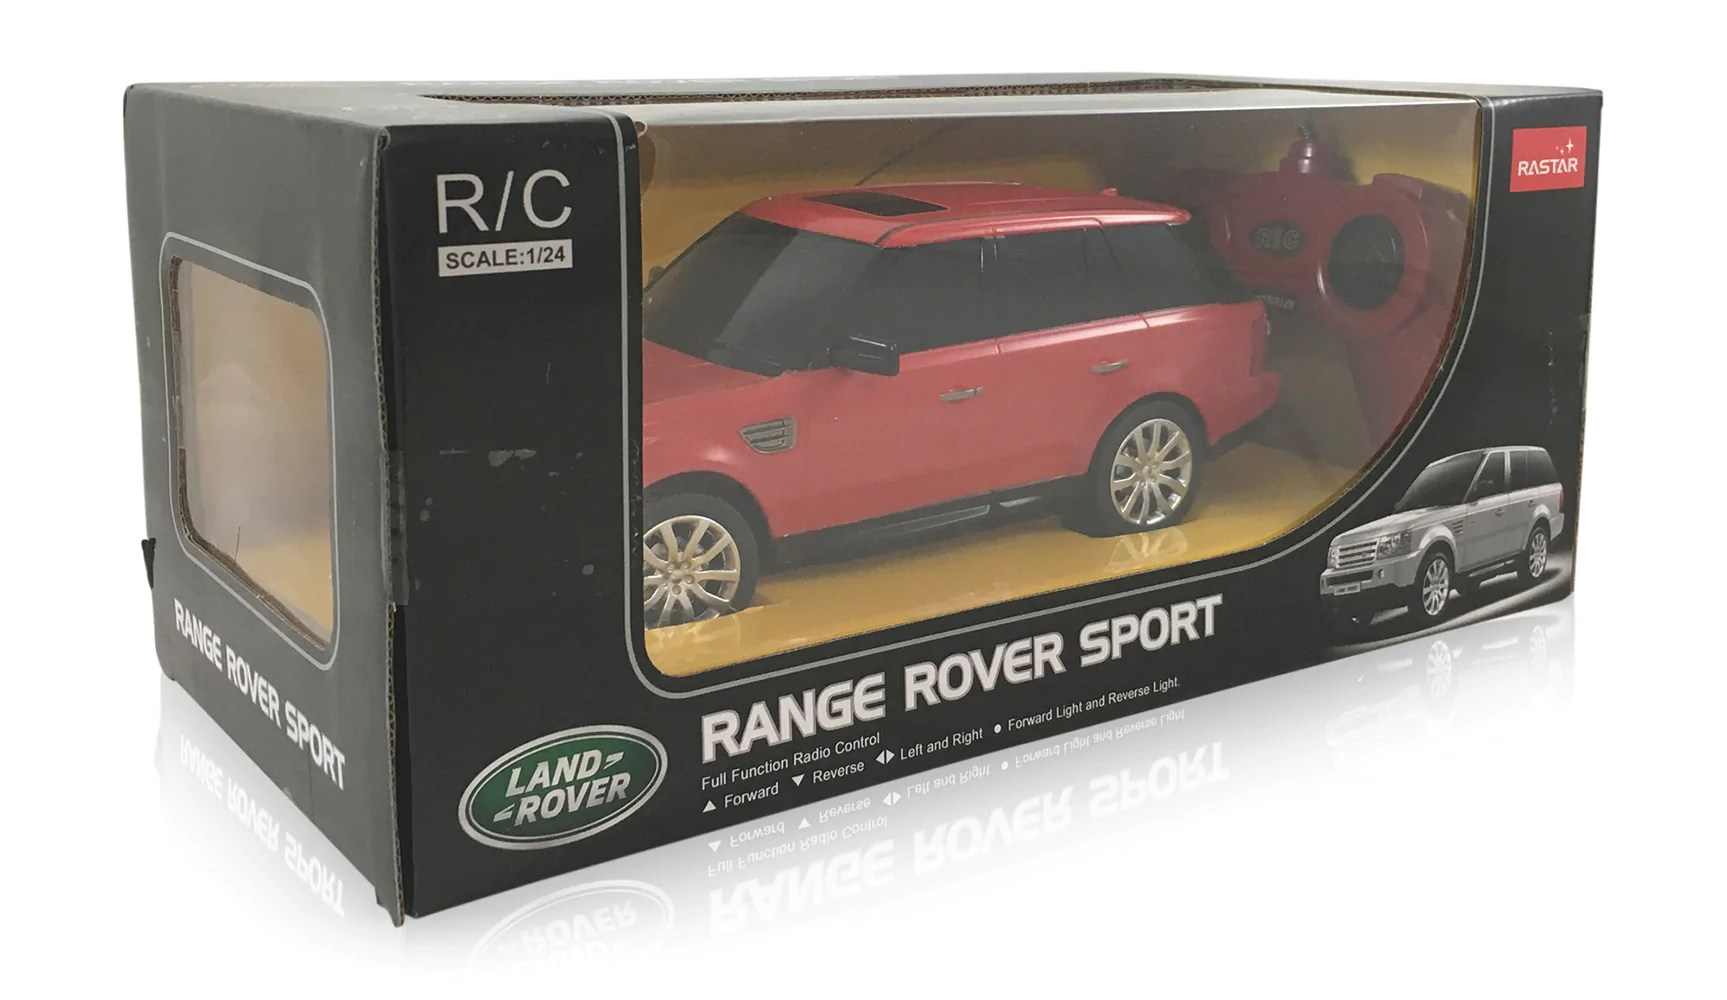 land rover range rover sport red 1 24 scale radio controlled model car by rastar [ 1727 x 1000 Pixel ]